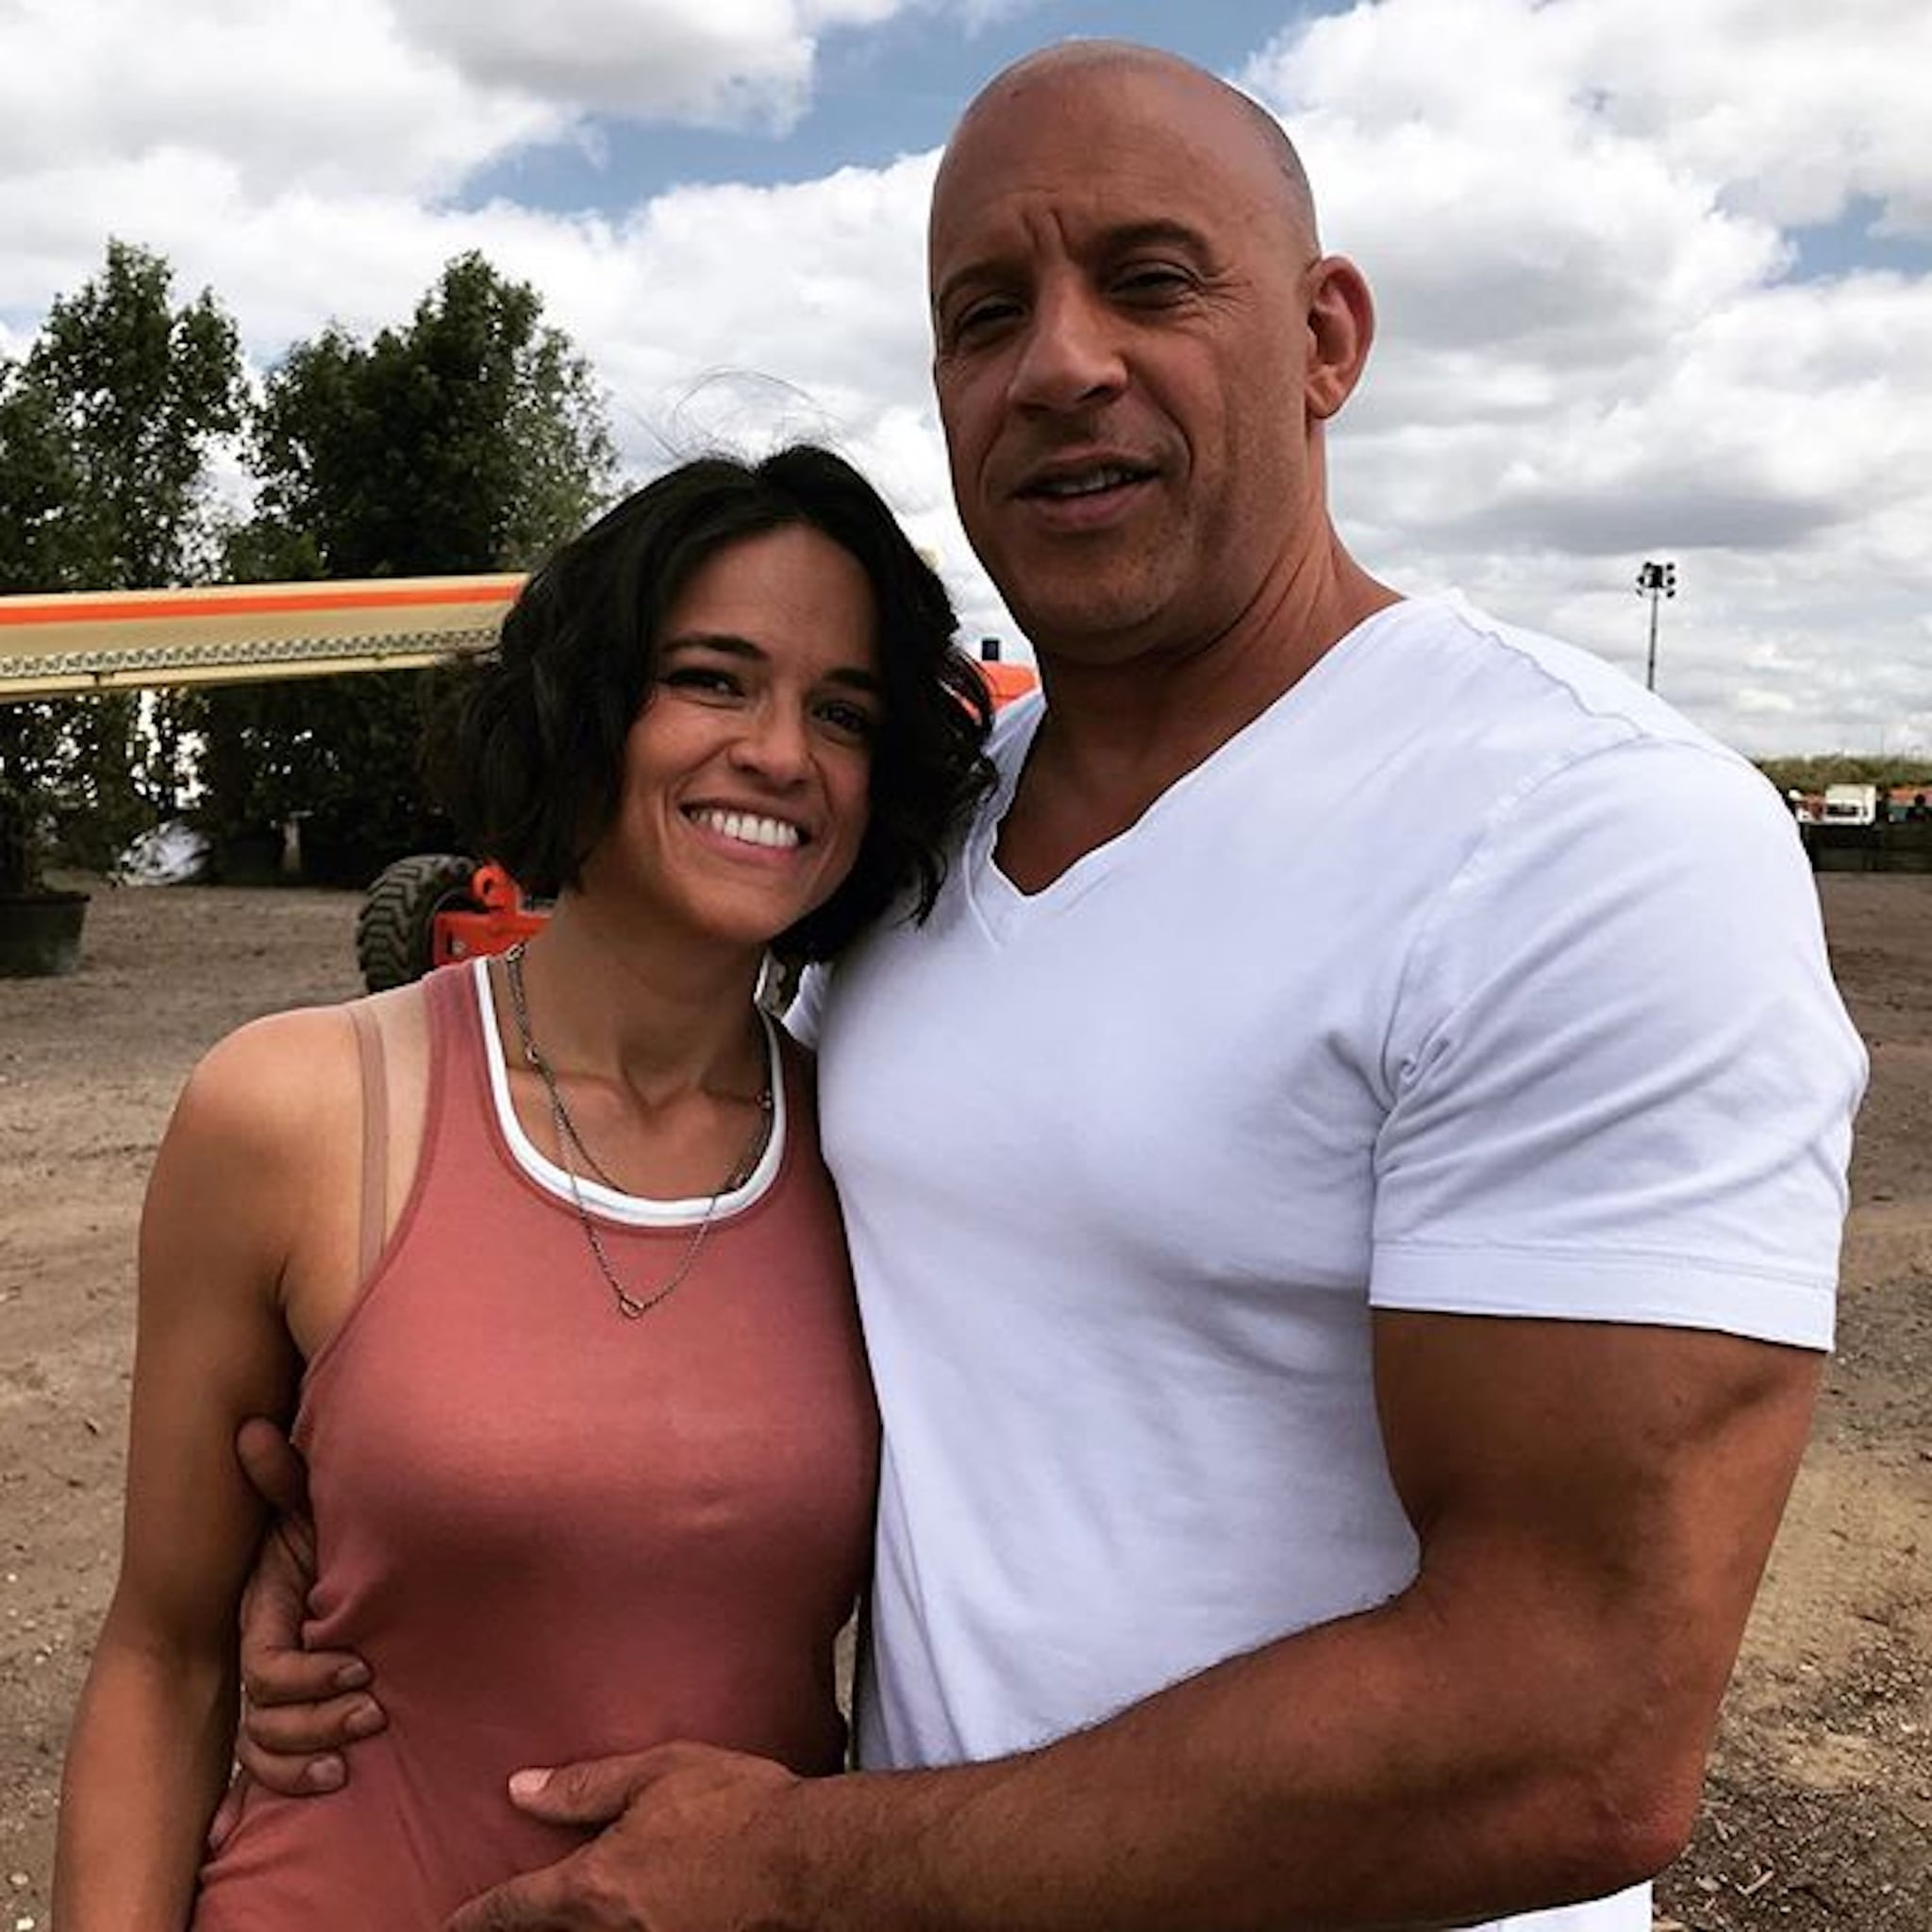 Fast and Furious 9 Behind-the-Scenes Pictures | POPSUGAR Entertainment UK